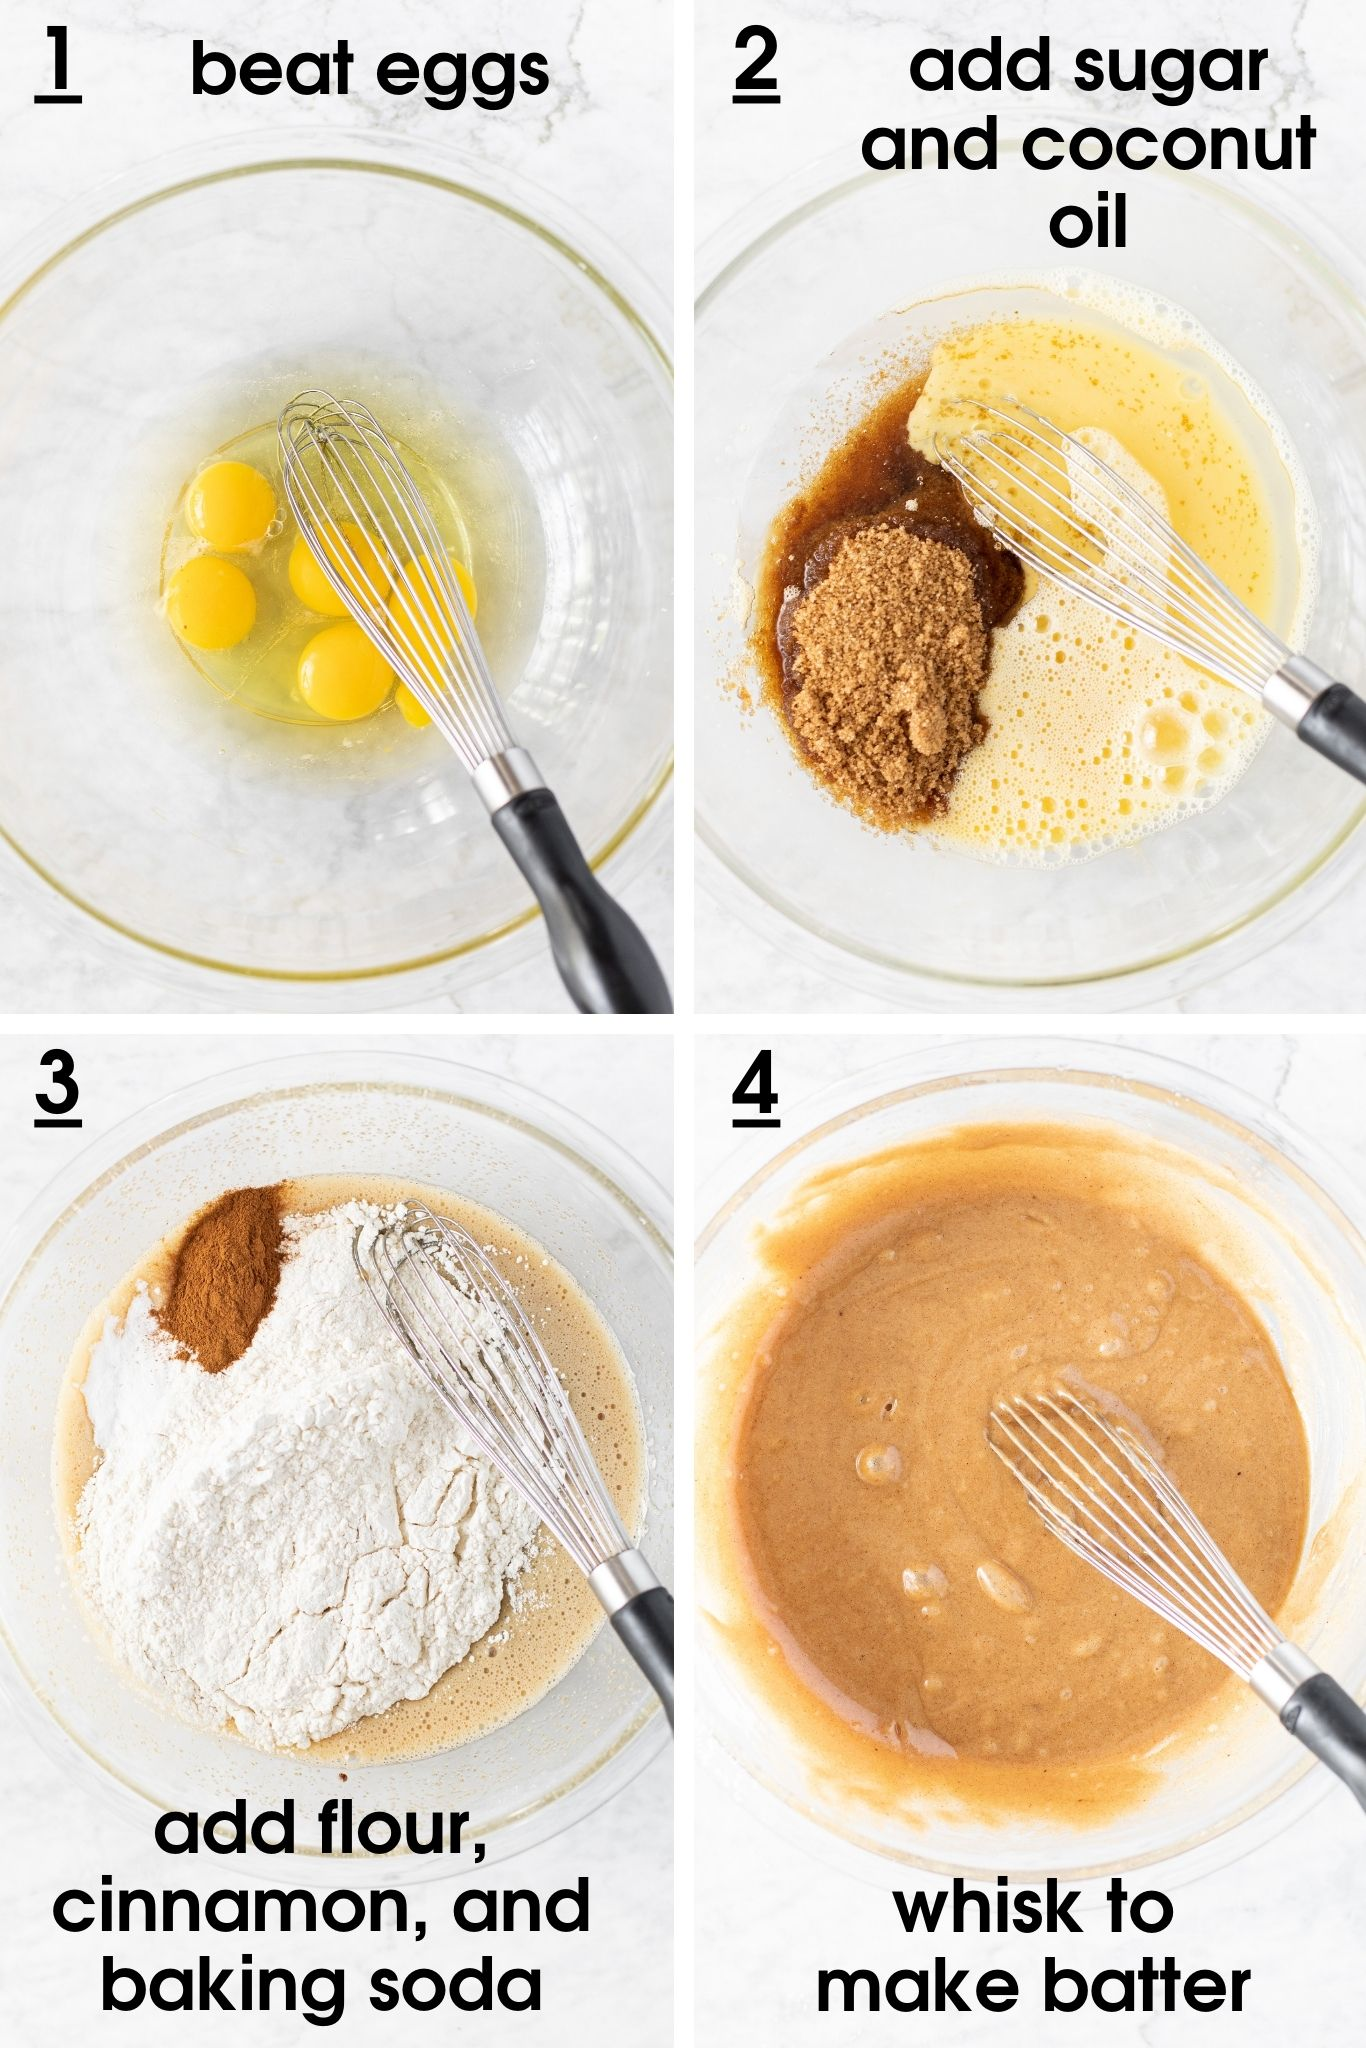 Steps showing how to make batter for Apple Pecan Chocolate Coffee Cake | from verygoodcook.com